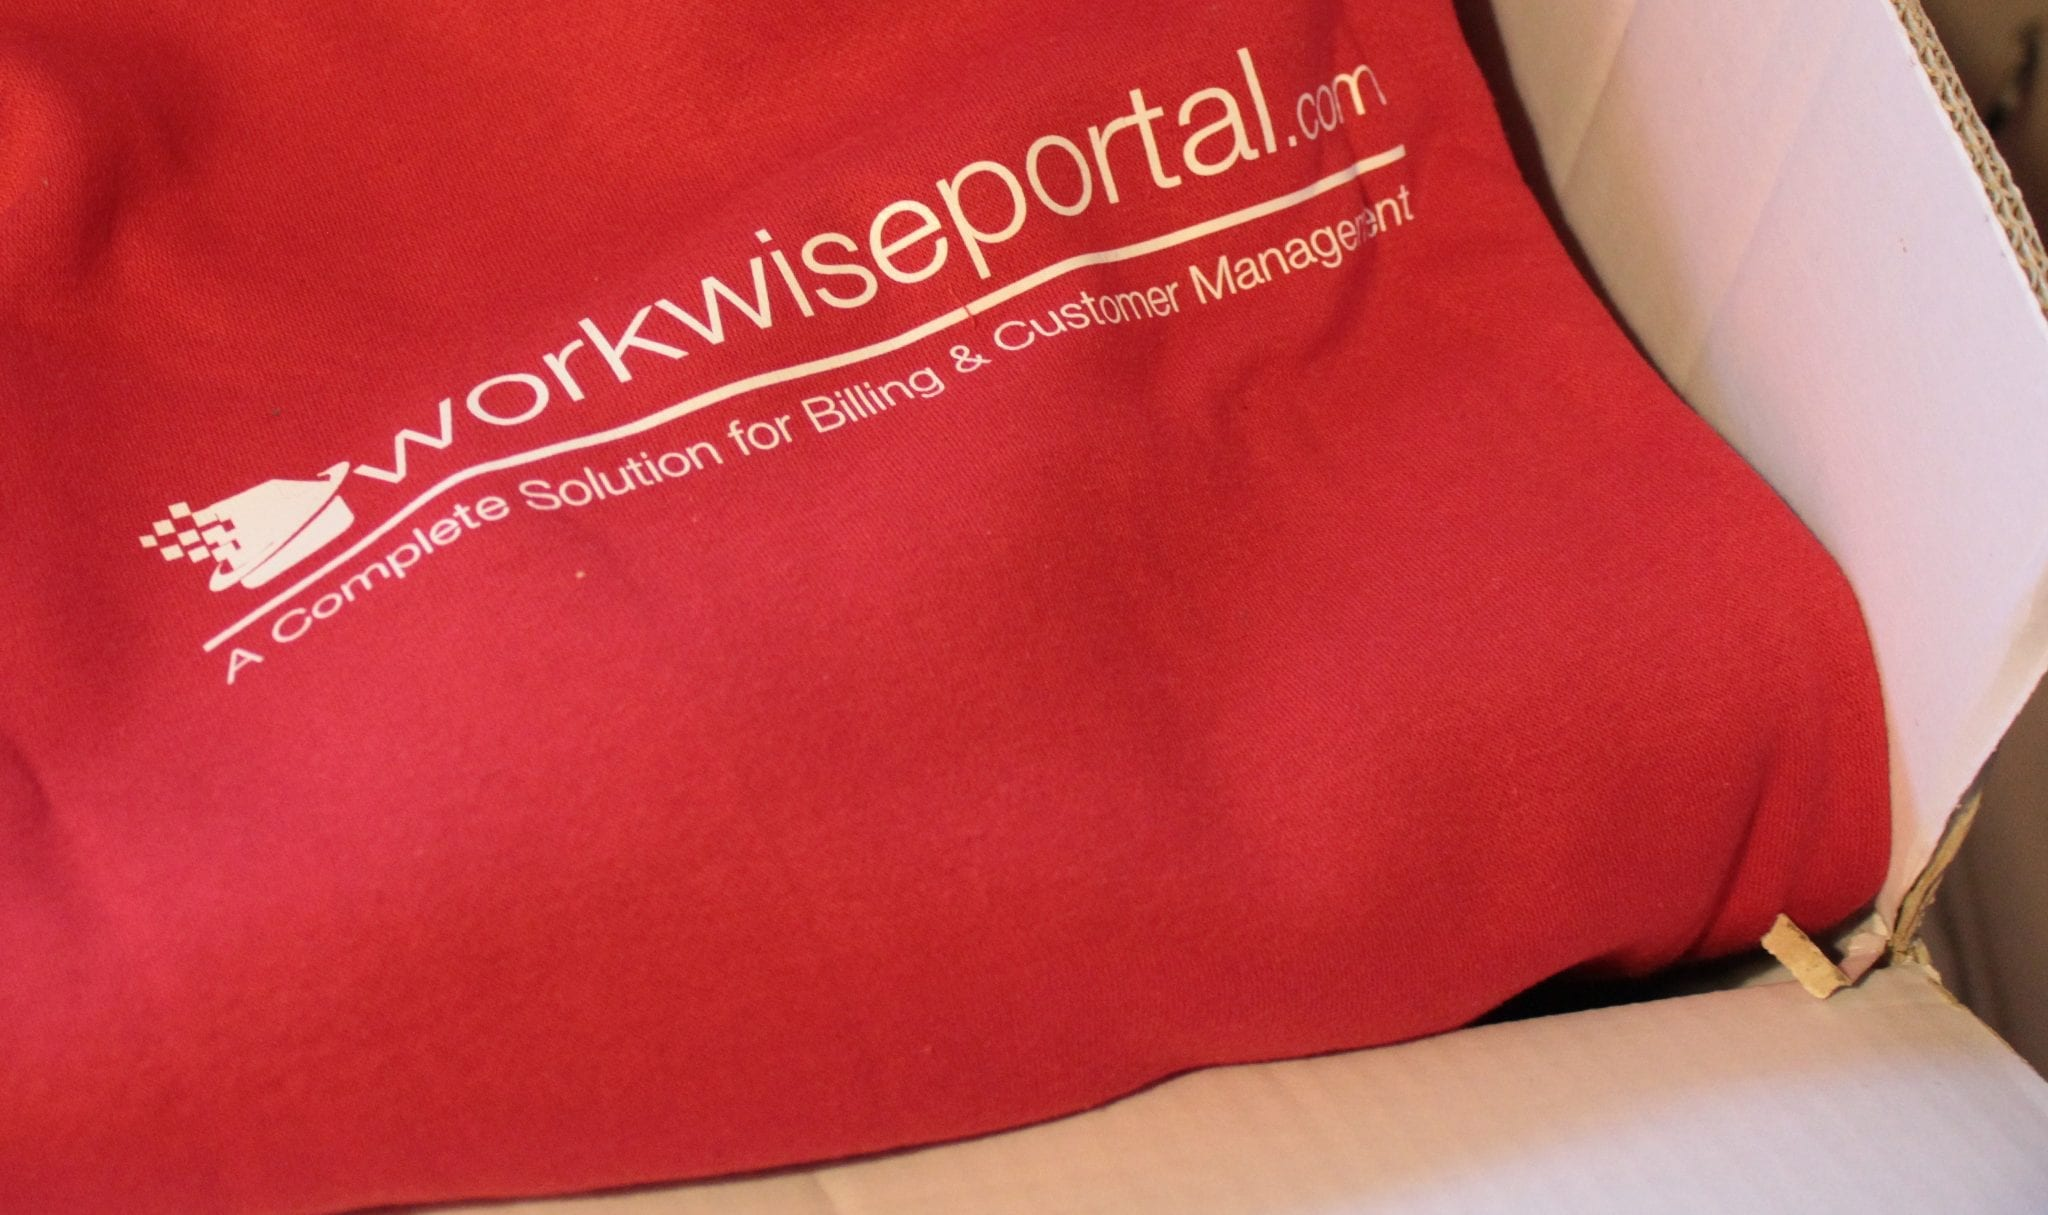 promotional-hoodies-designed-workwise-portal.png